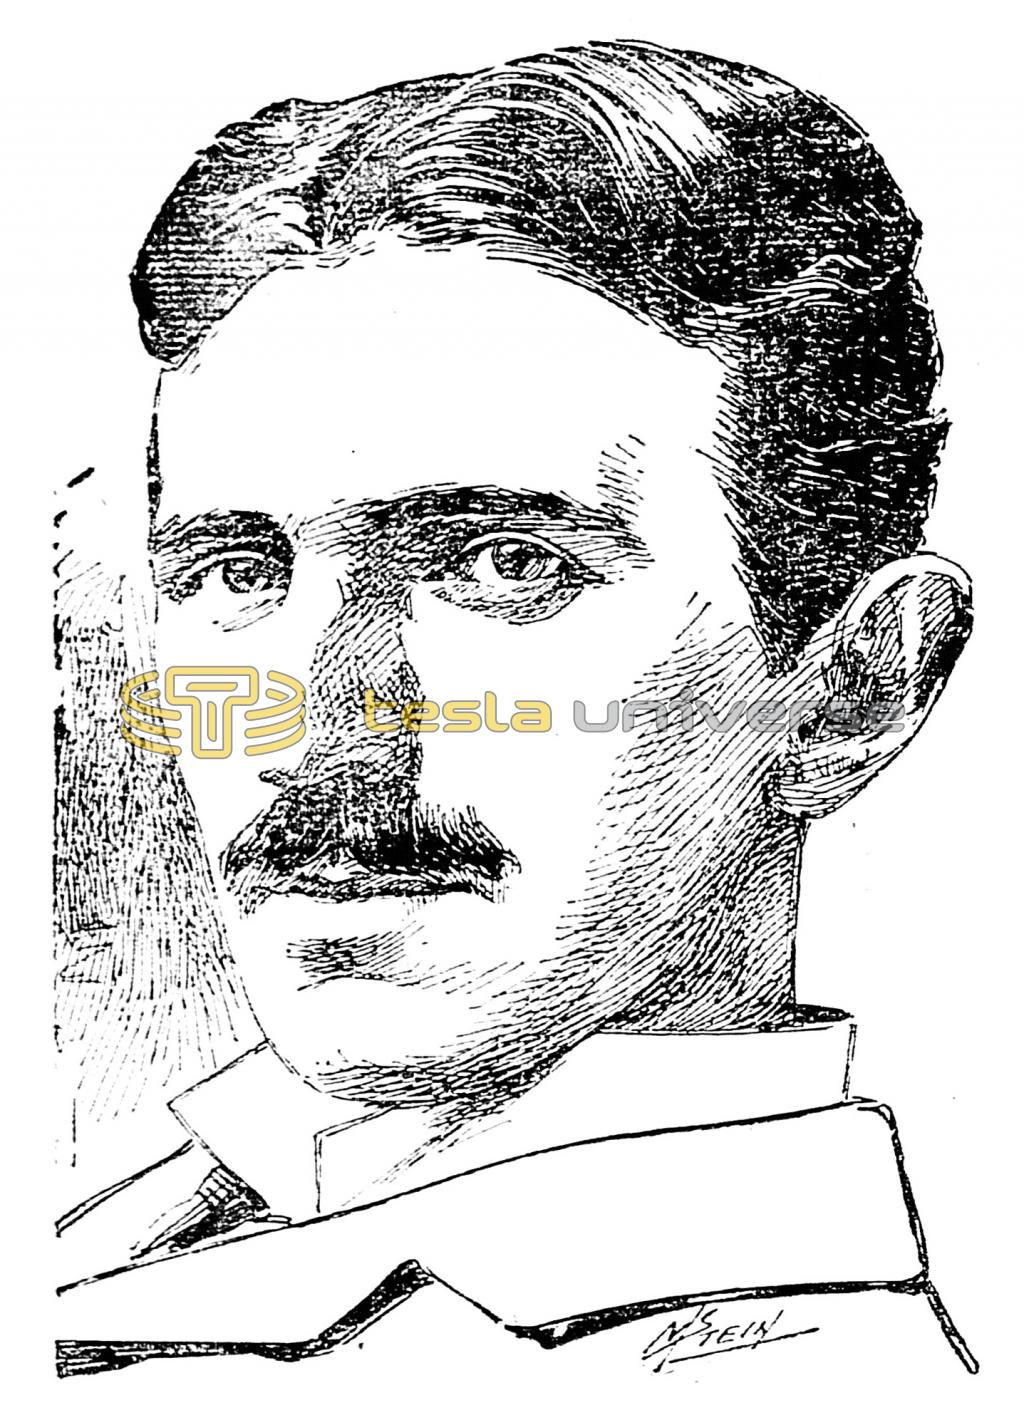 Sketch of the electrical genius, Nikola Tesla